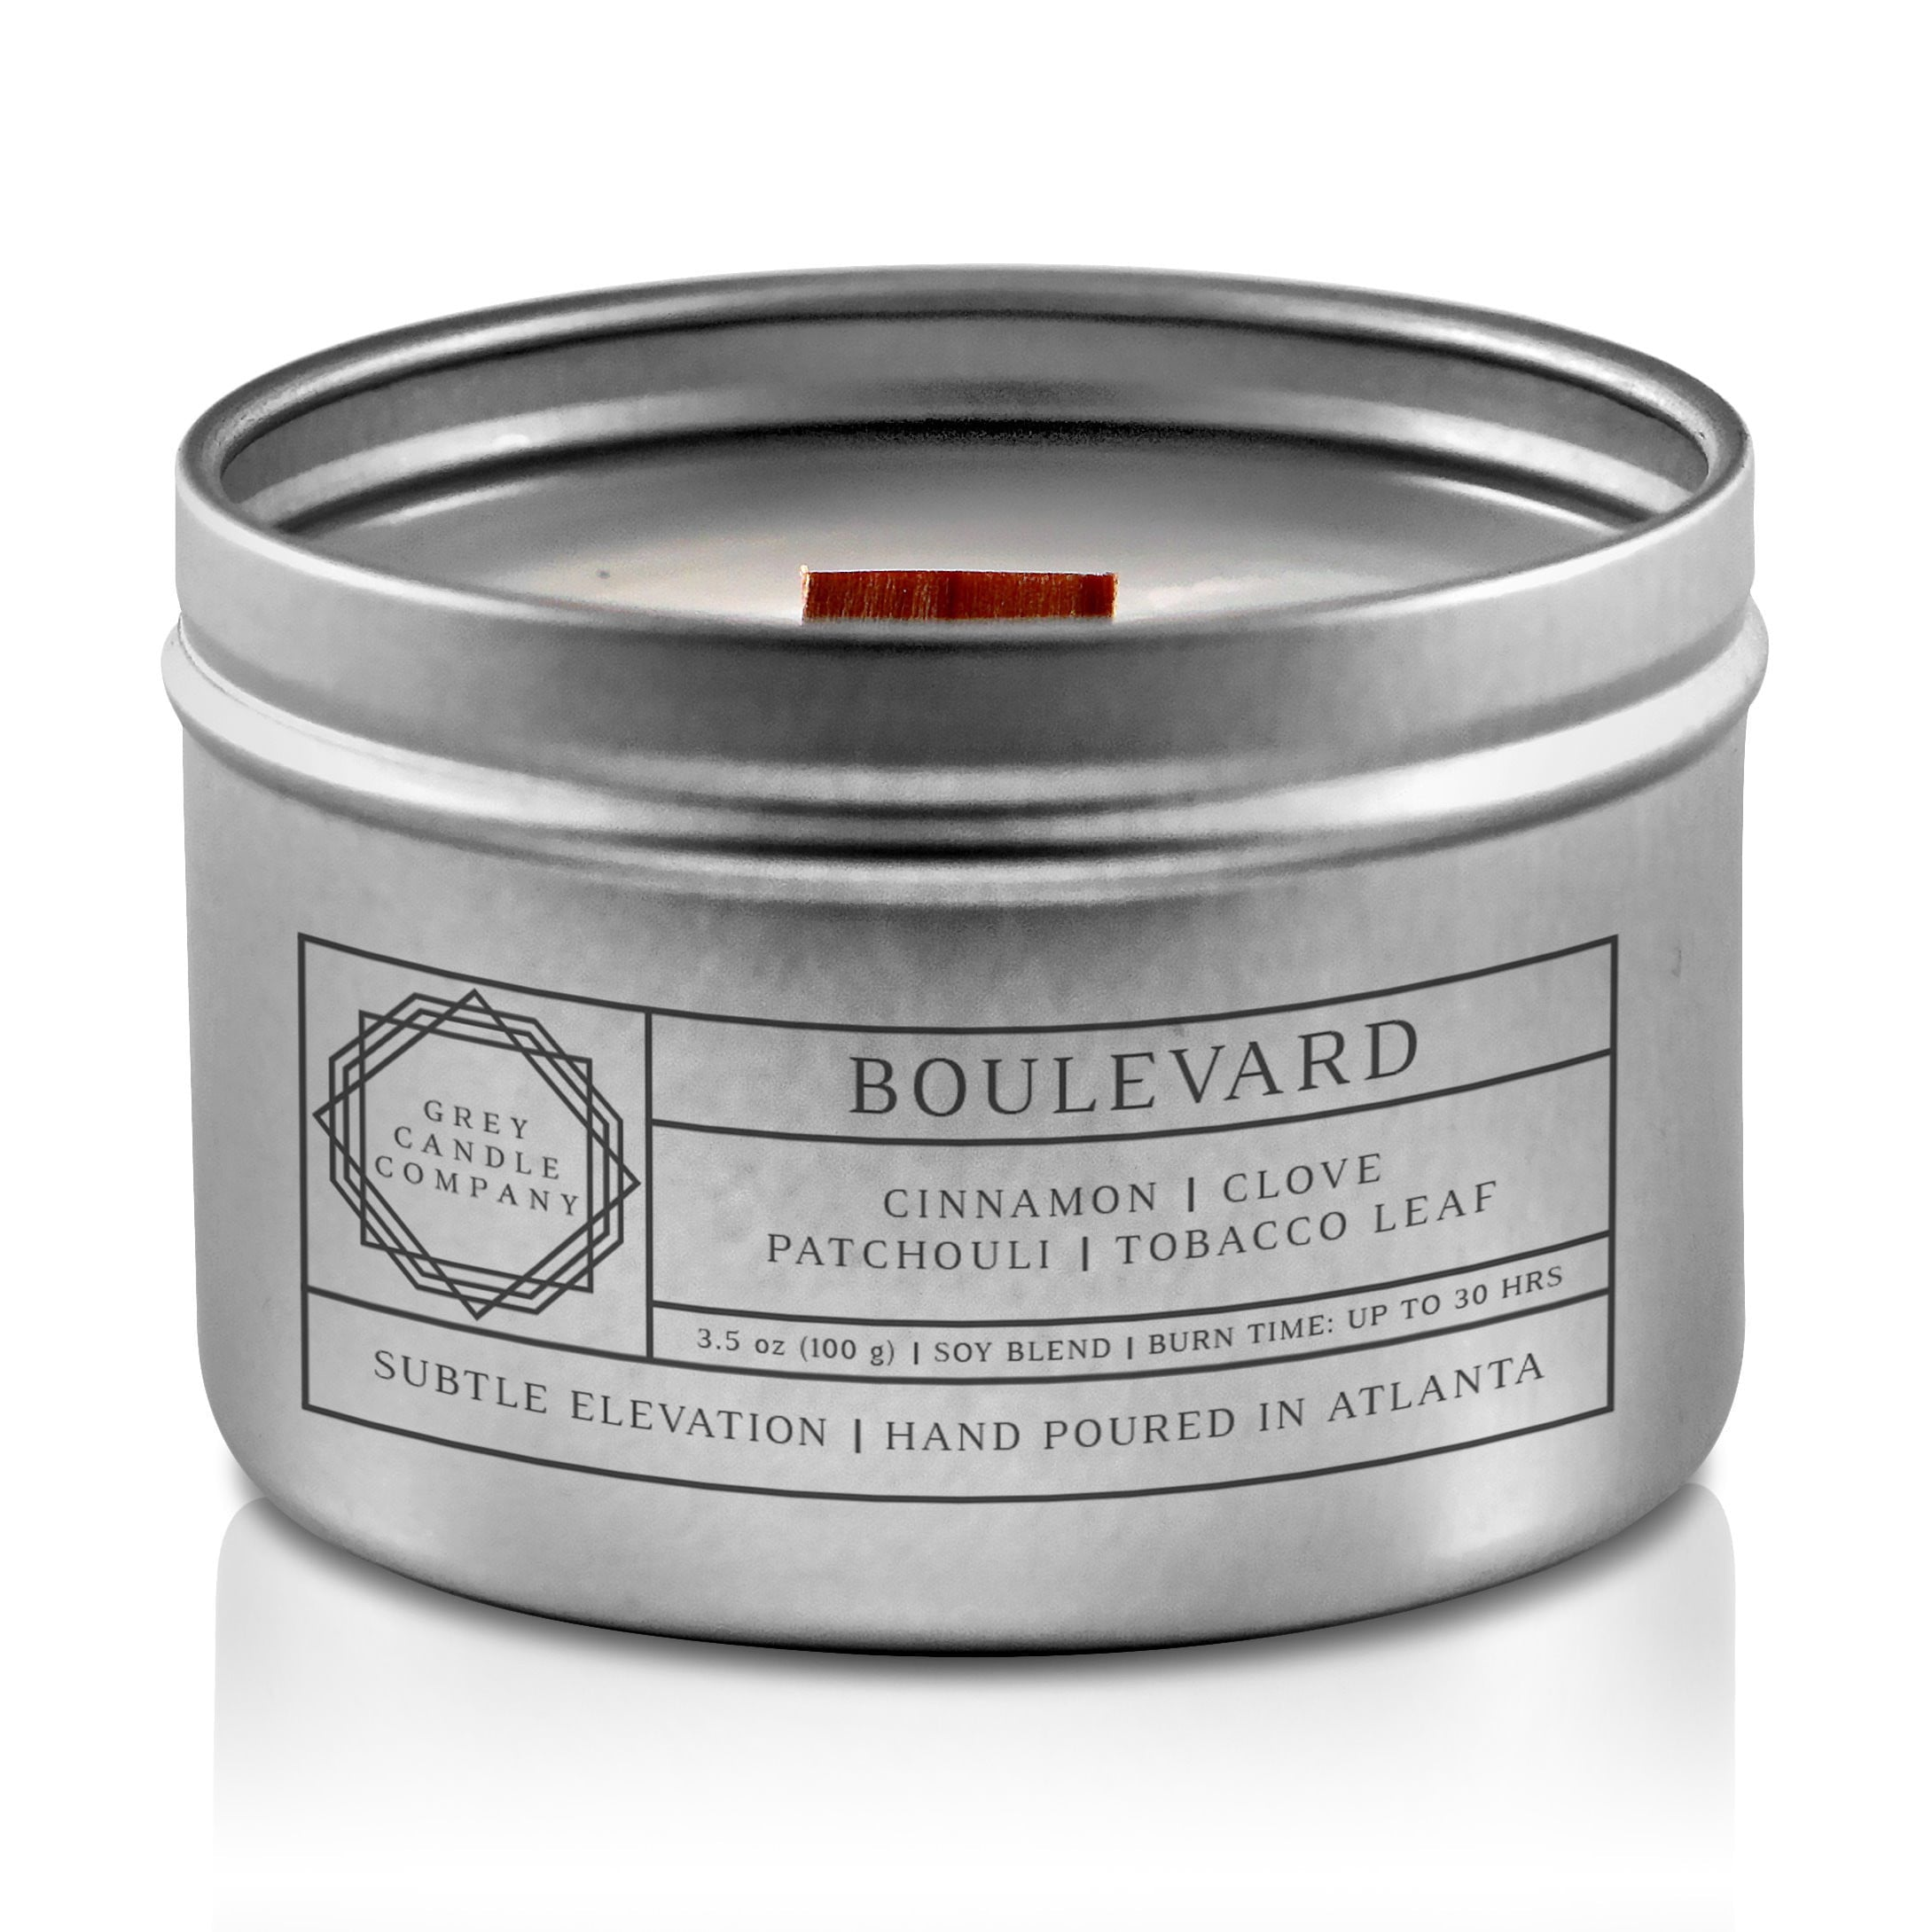 BOULEVARD CANDLES Grey Candle Company 3.5 oz. TIN